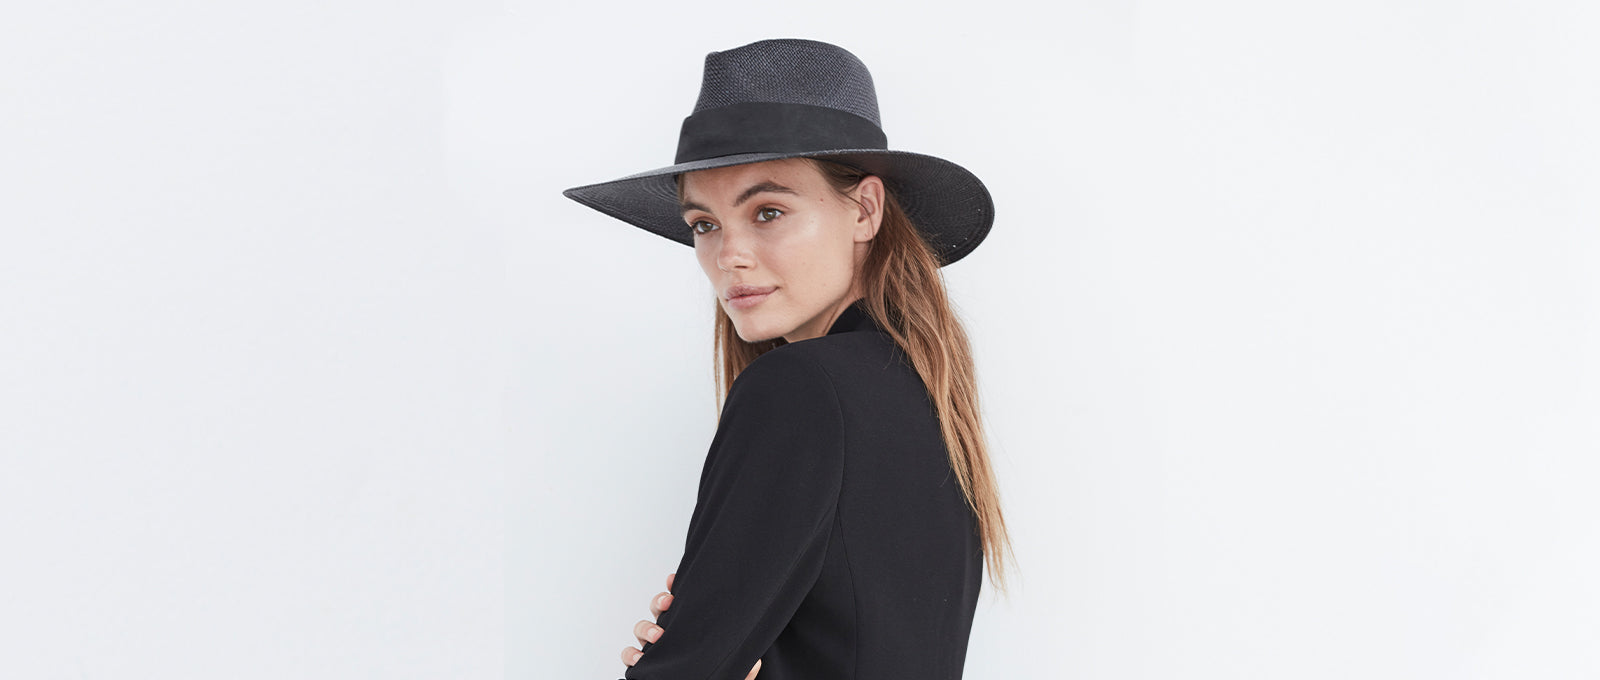 all black womens straw fedora hat with black leather band. Panama straw for highest rated sun protection and great for traveling and summer